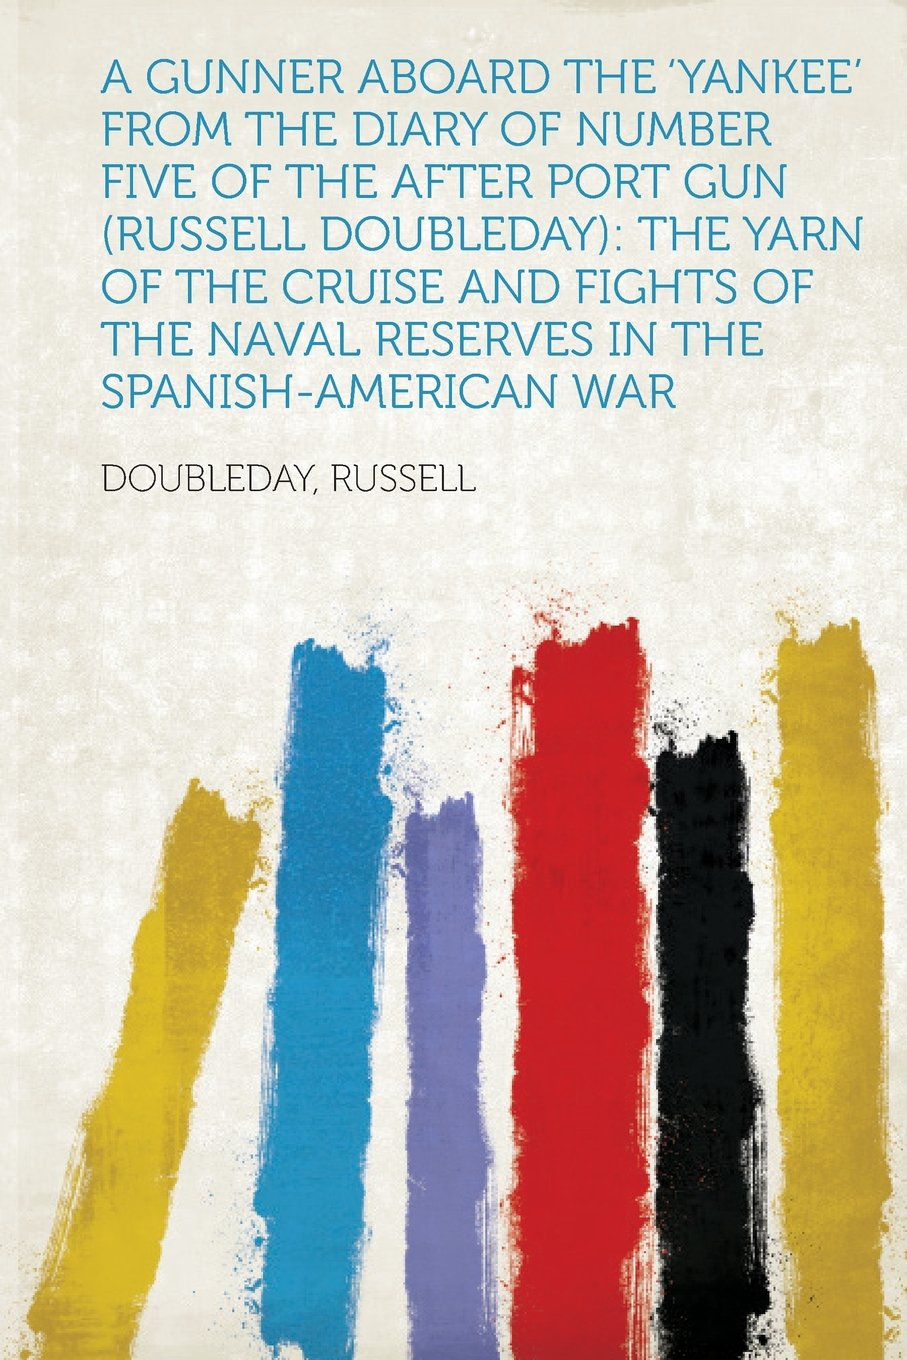 Read Online A Gunner Aboard the 'Yankee' From the Diary of Number Five of the After Port Gun (Russell Doubleday): The Yarn of the Cruise and Fights of the Naval Reserves in the Spanish-American War ebook